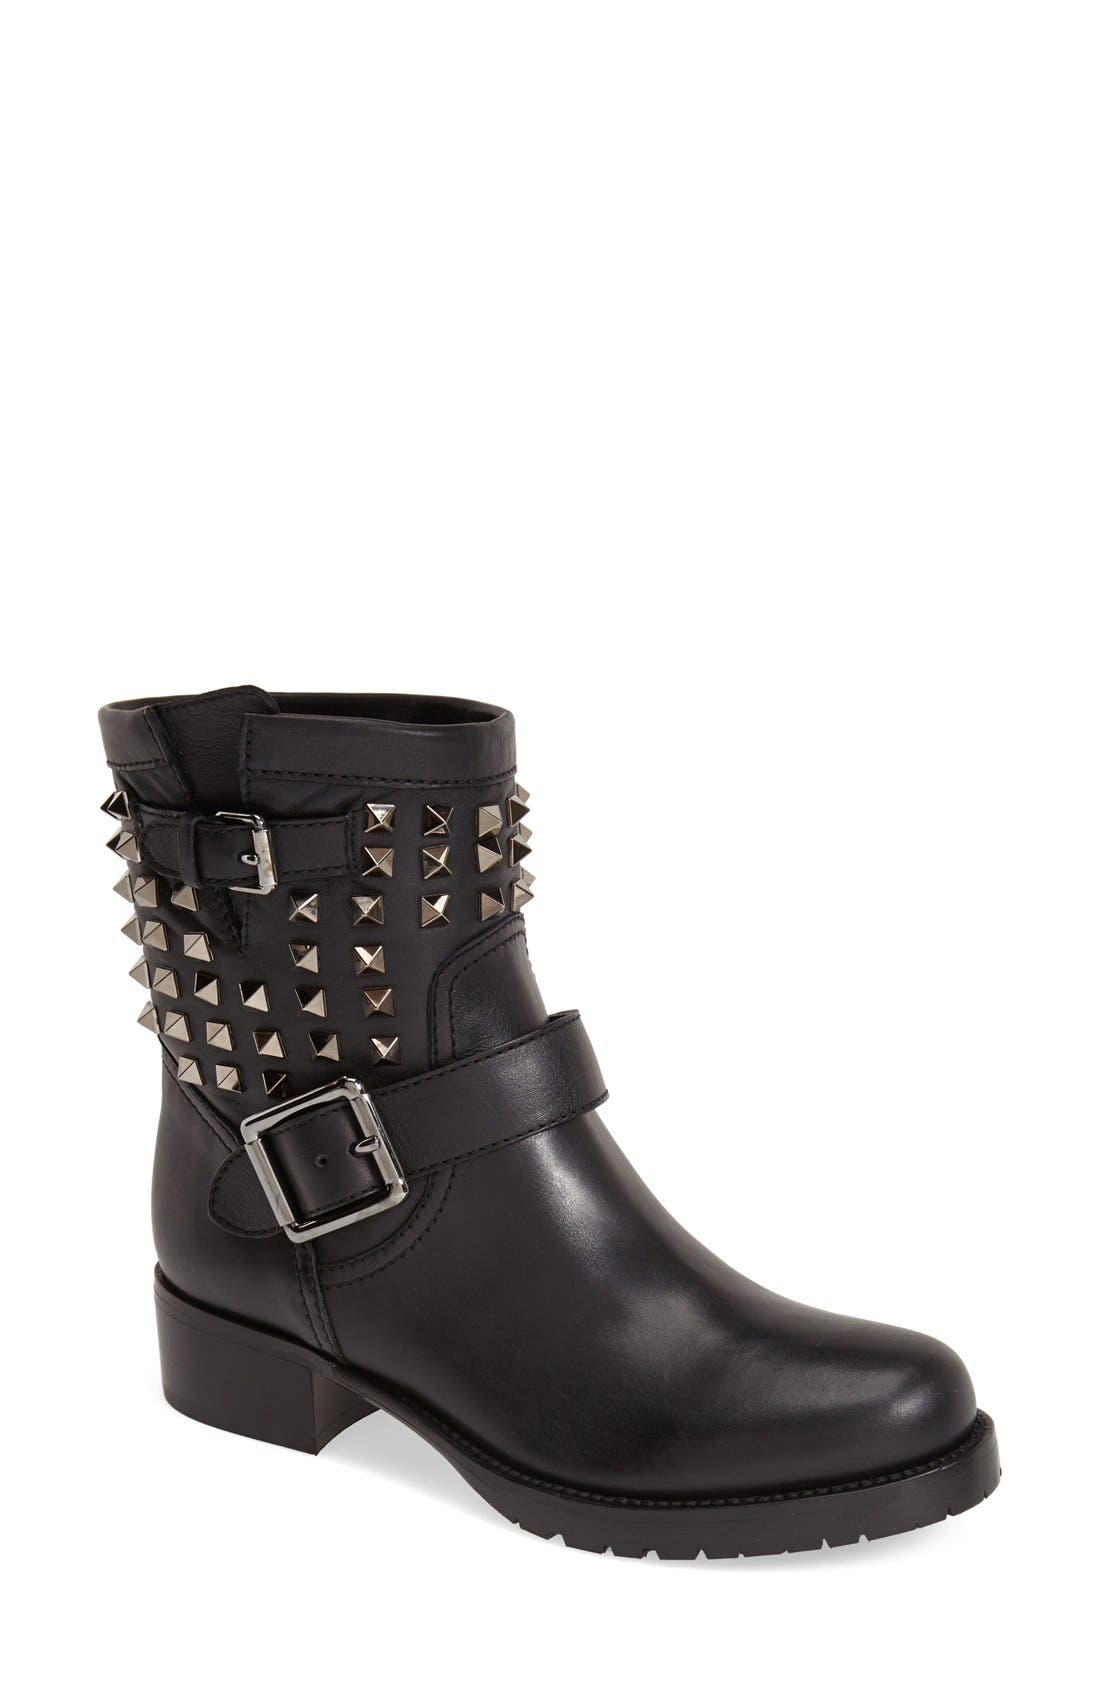 Alternate Image 1 Selected - Valentino 'Rockstud' Biker Boot